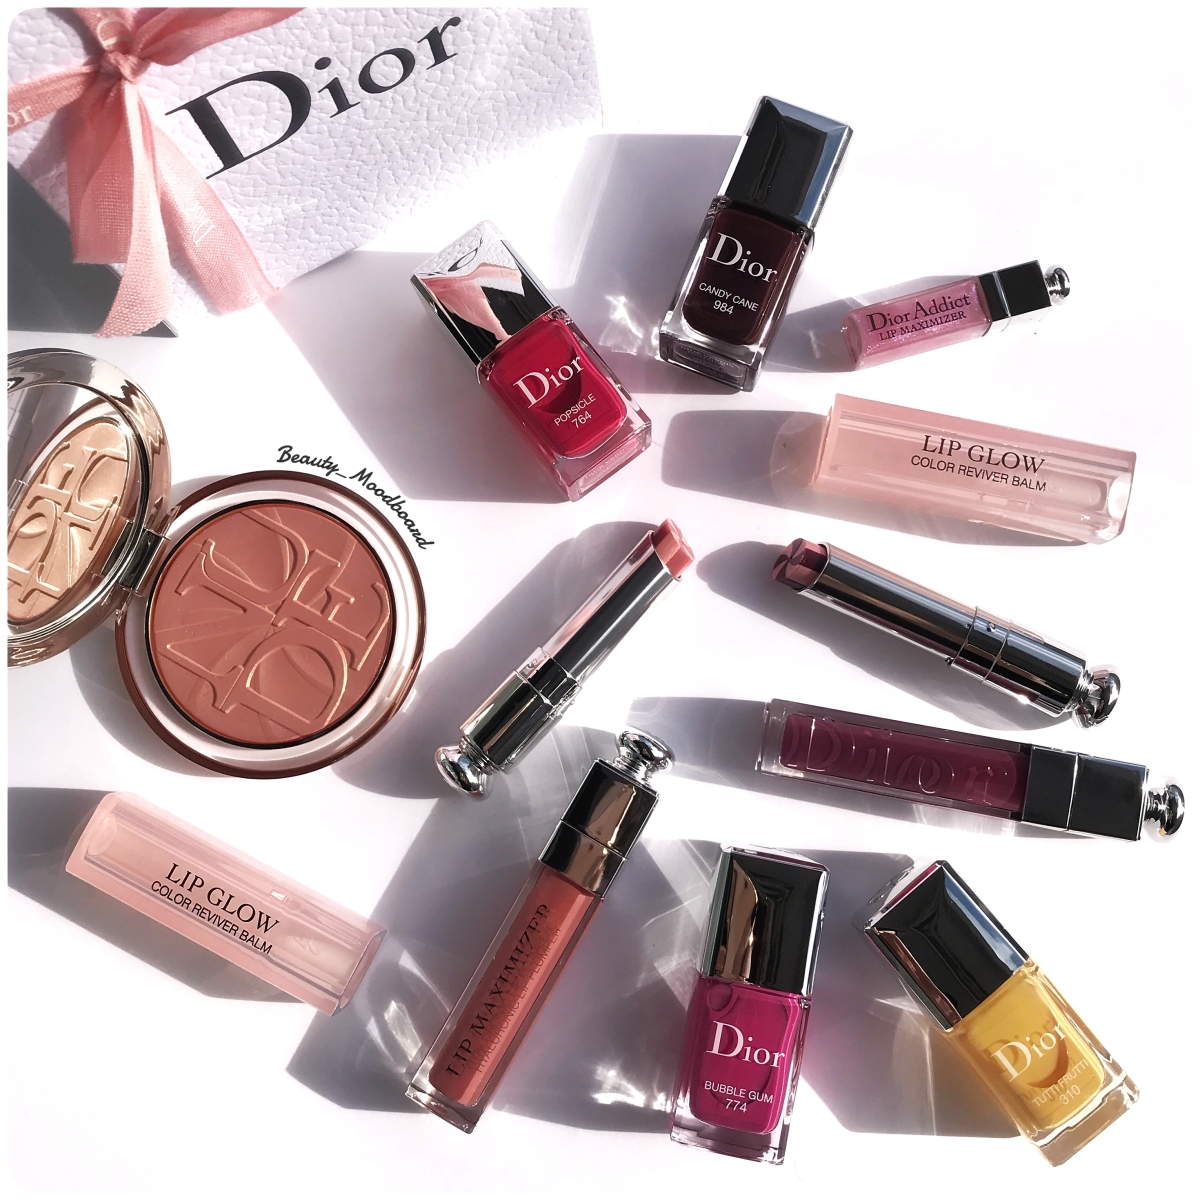 Dior Makeup Lolli'Glow Spring Look 2019 : Mon Haul !